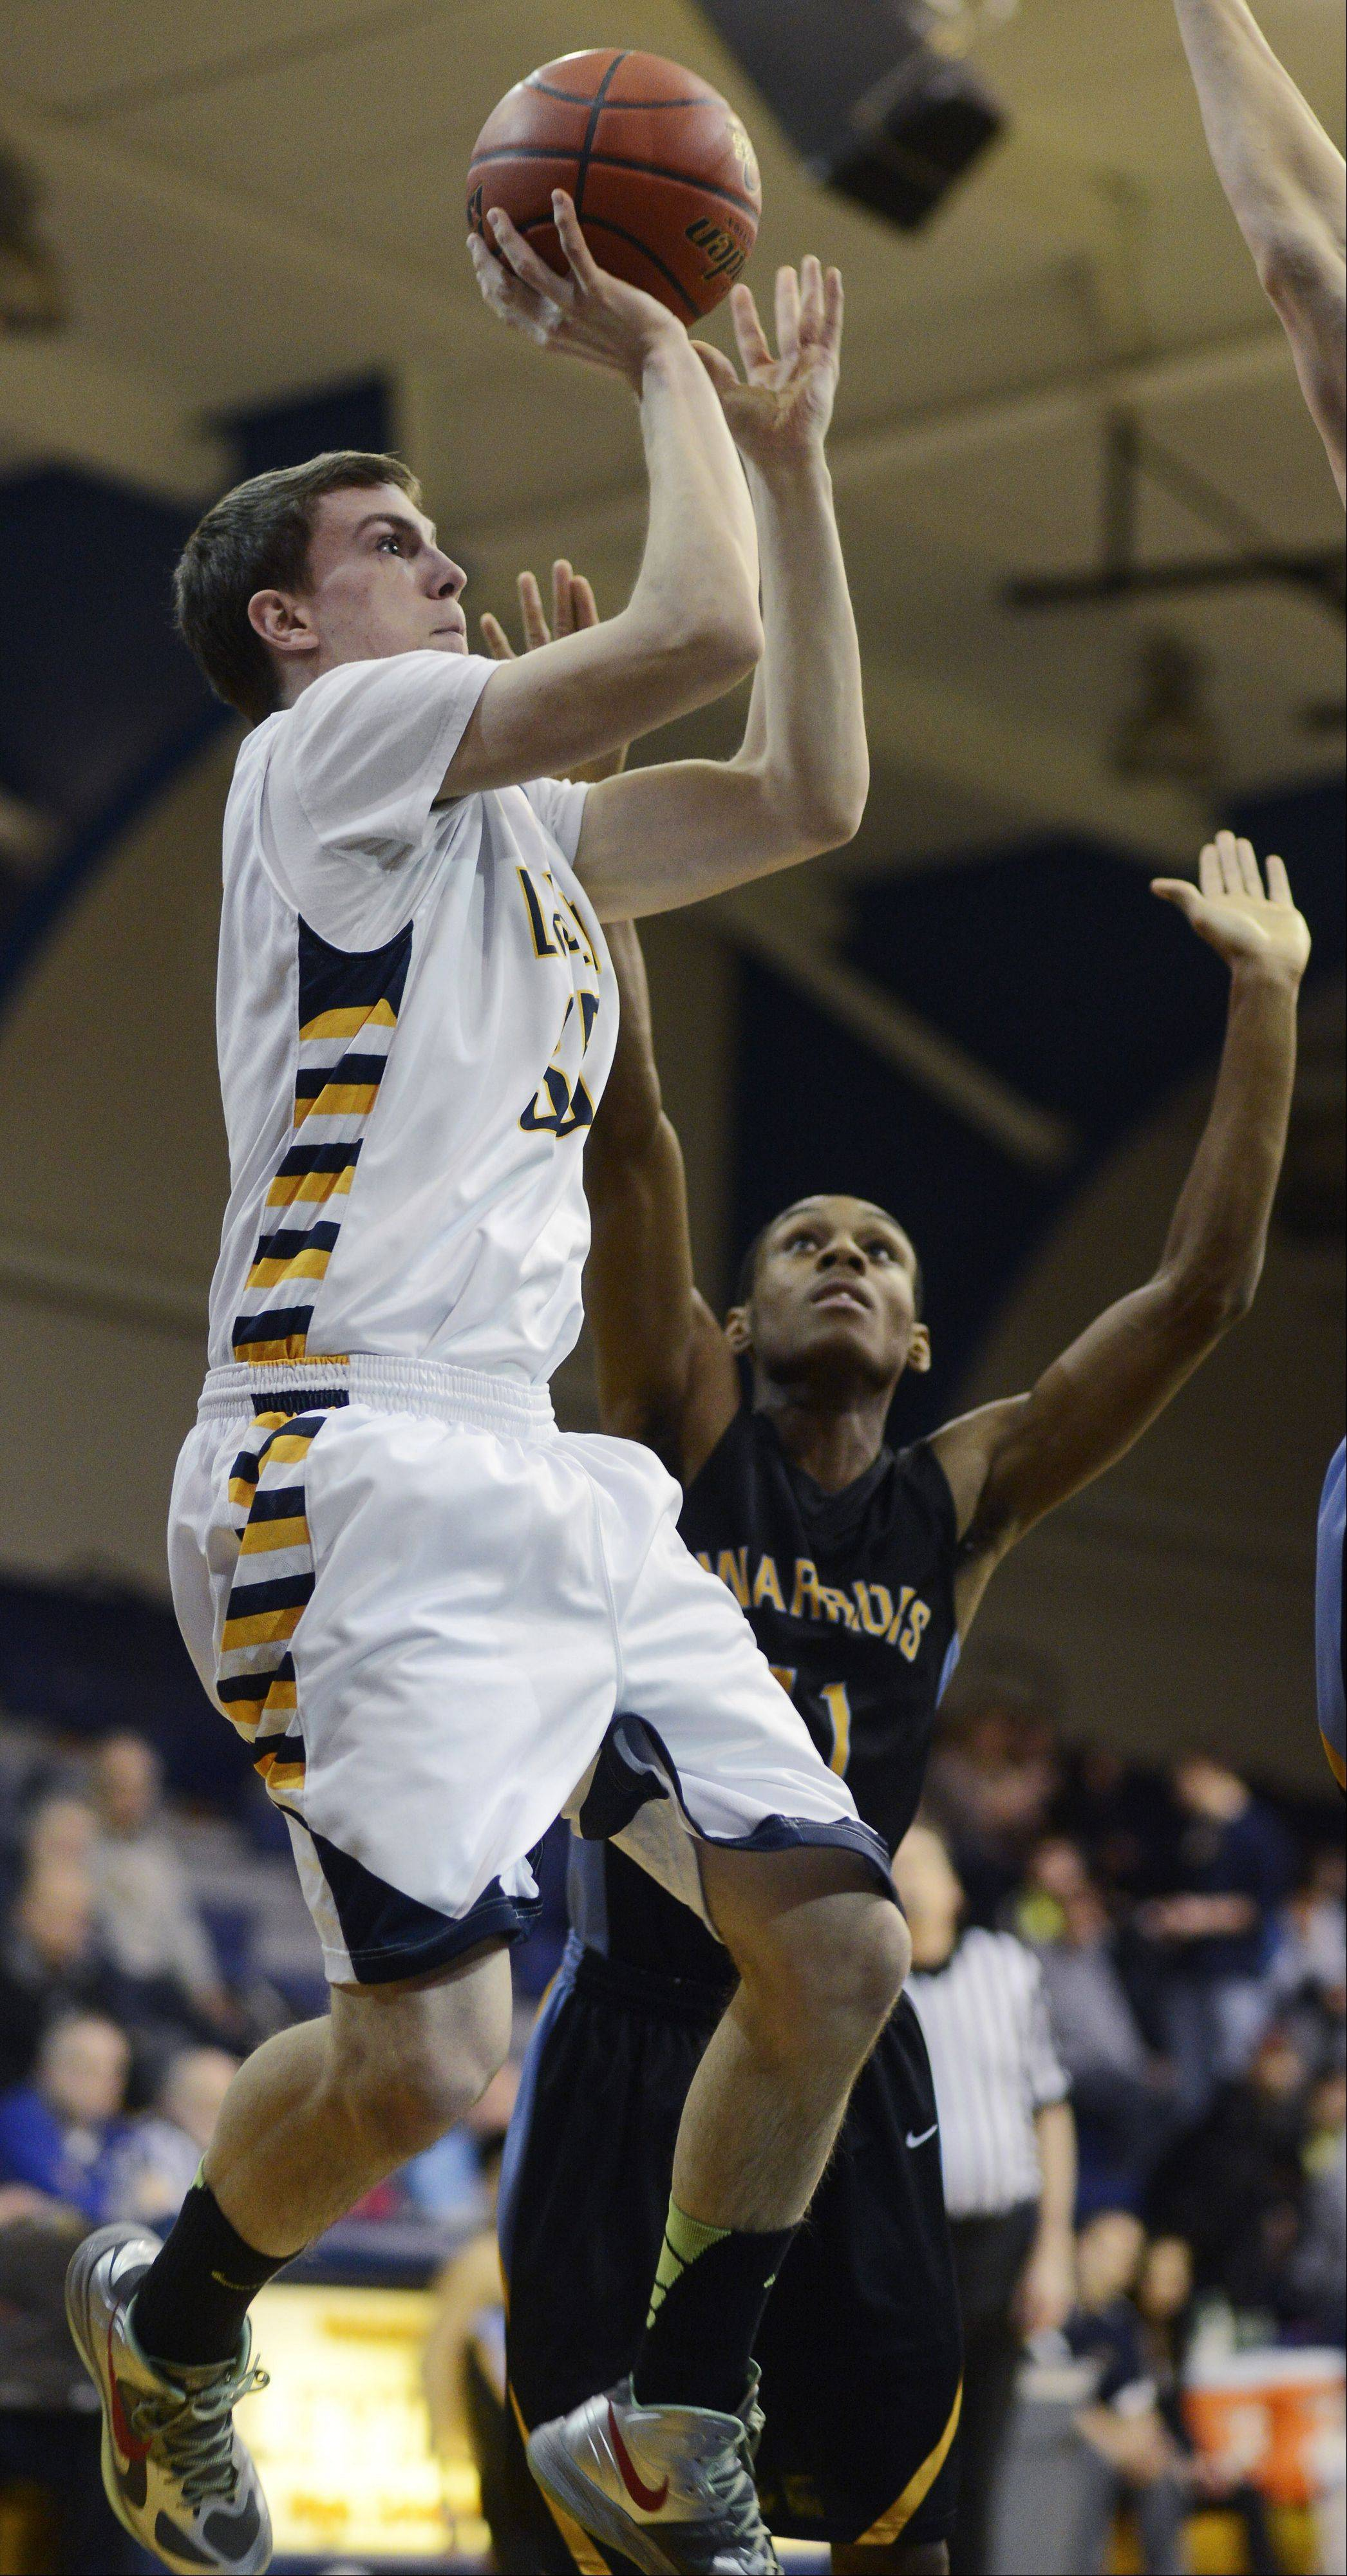 Leyden�s Jonny Woolf, left, takes a shot against the Maine West defense including Allante Bates.